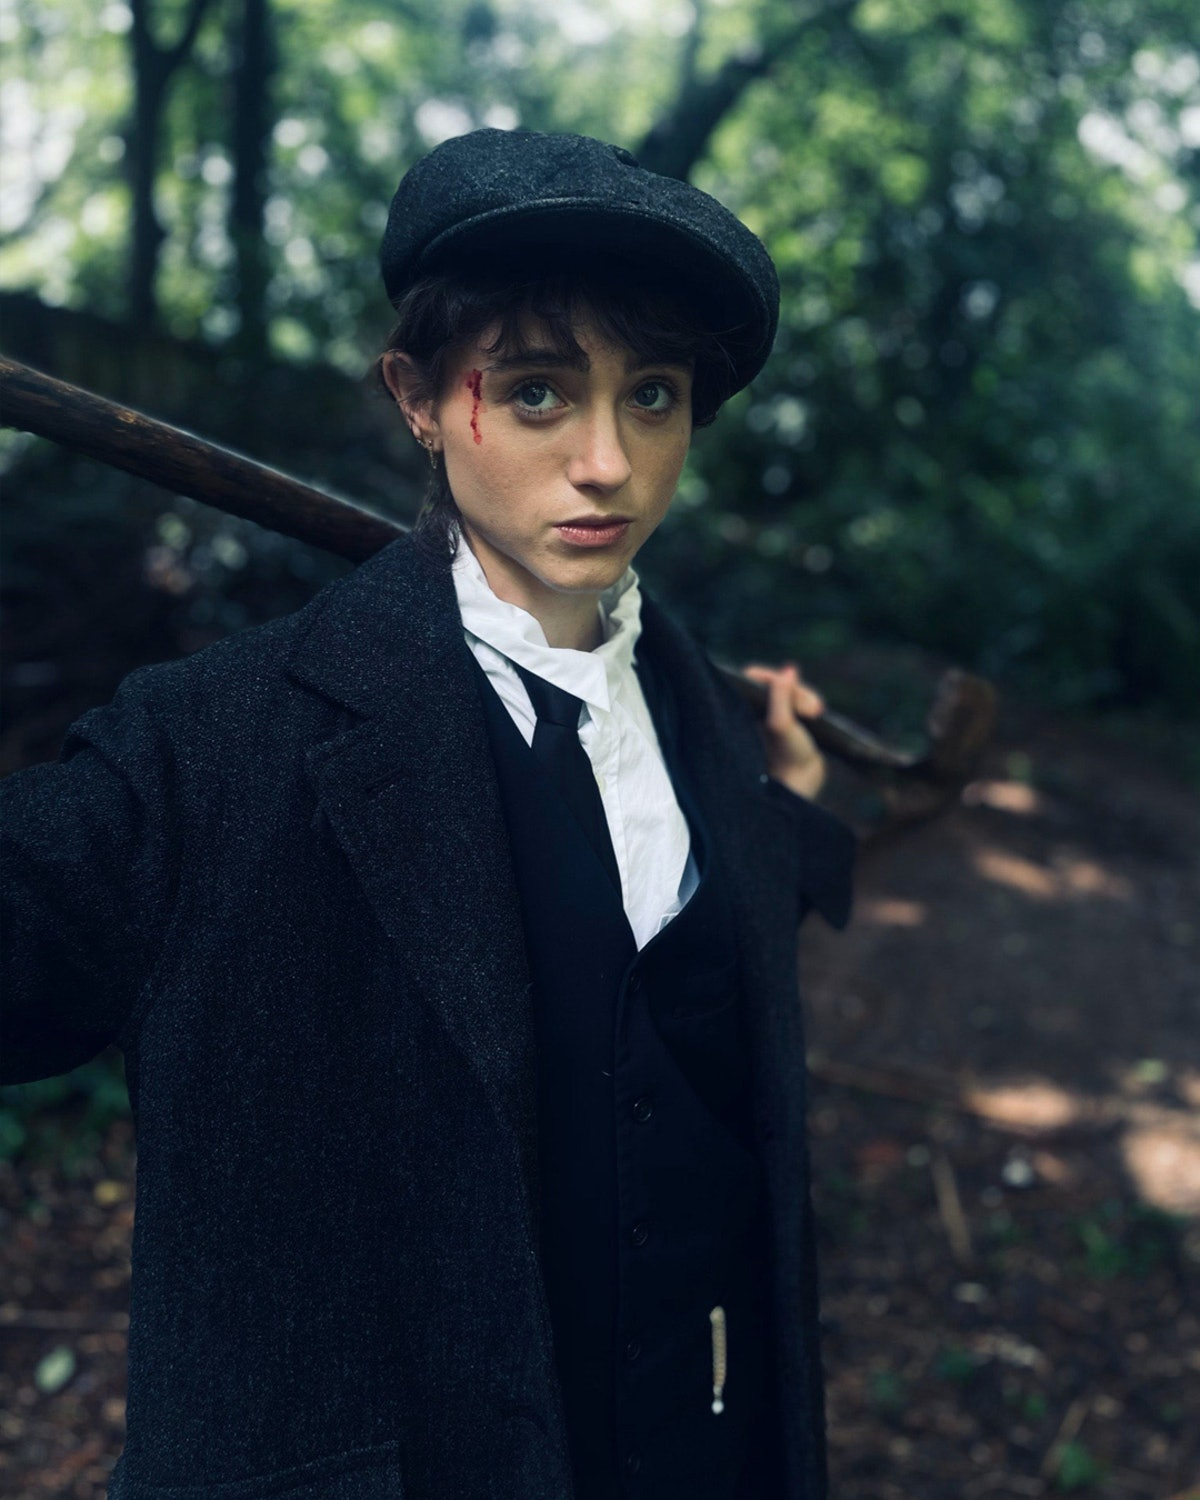 Natalia Dyer as Tommy Shelby from Peaky Blinders